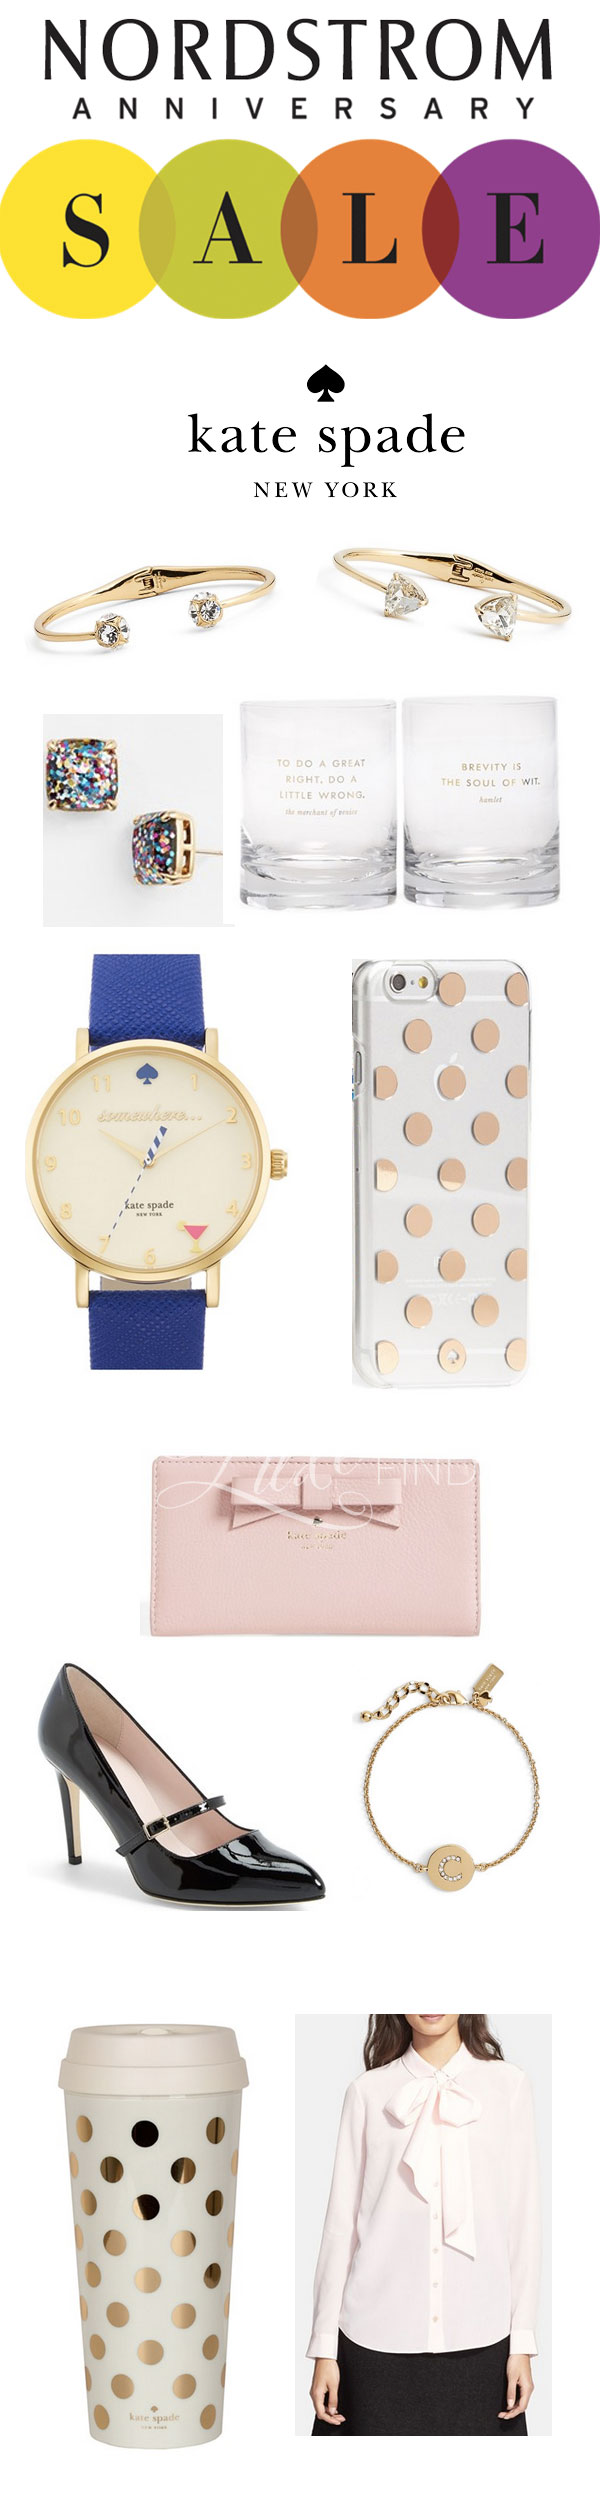 nordstrom anniversary sale kate spade new york